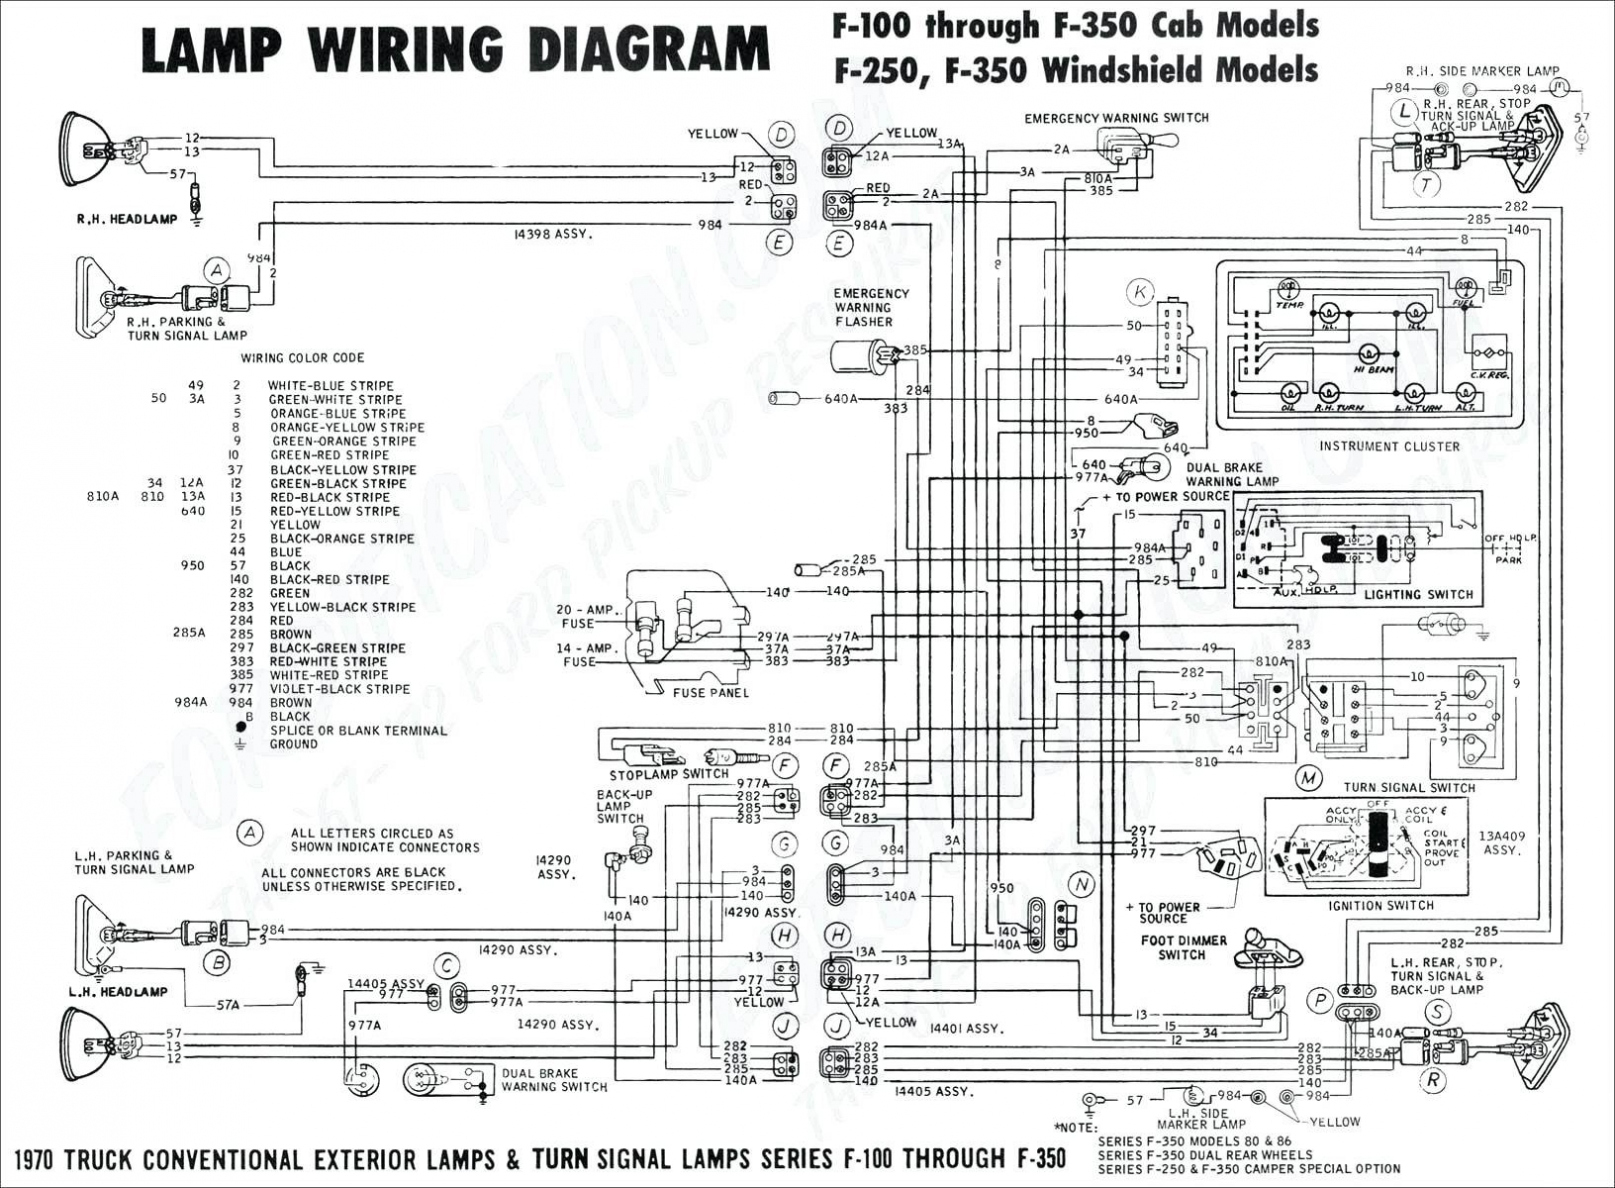 1969 F100 Wiring Harness | Wiring Diagram F Wiring Harness Complete on